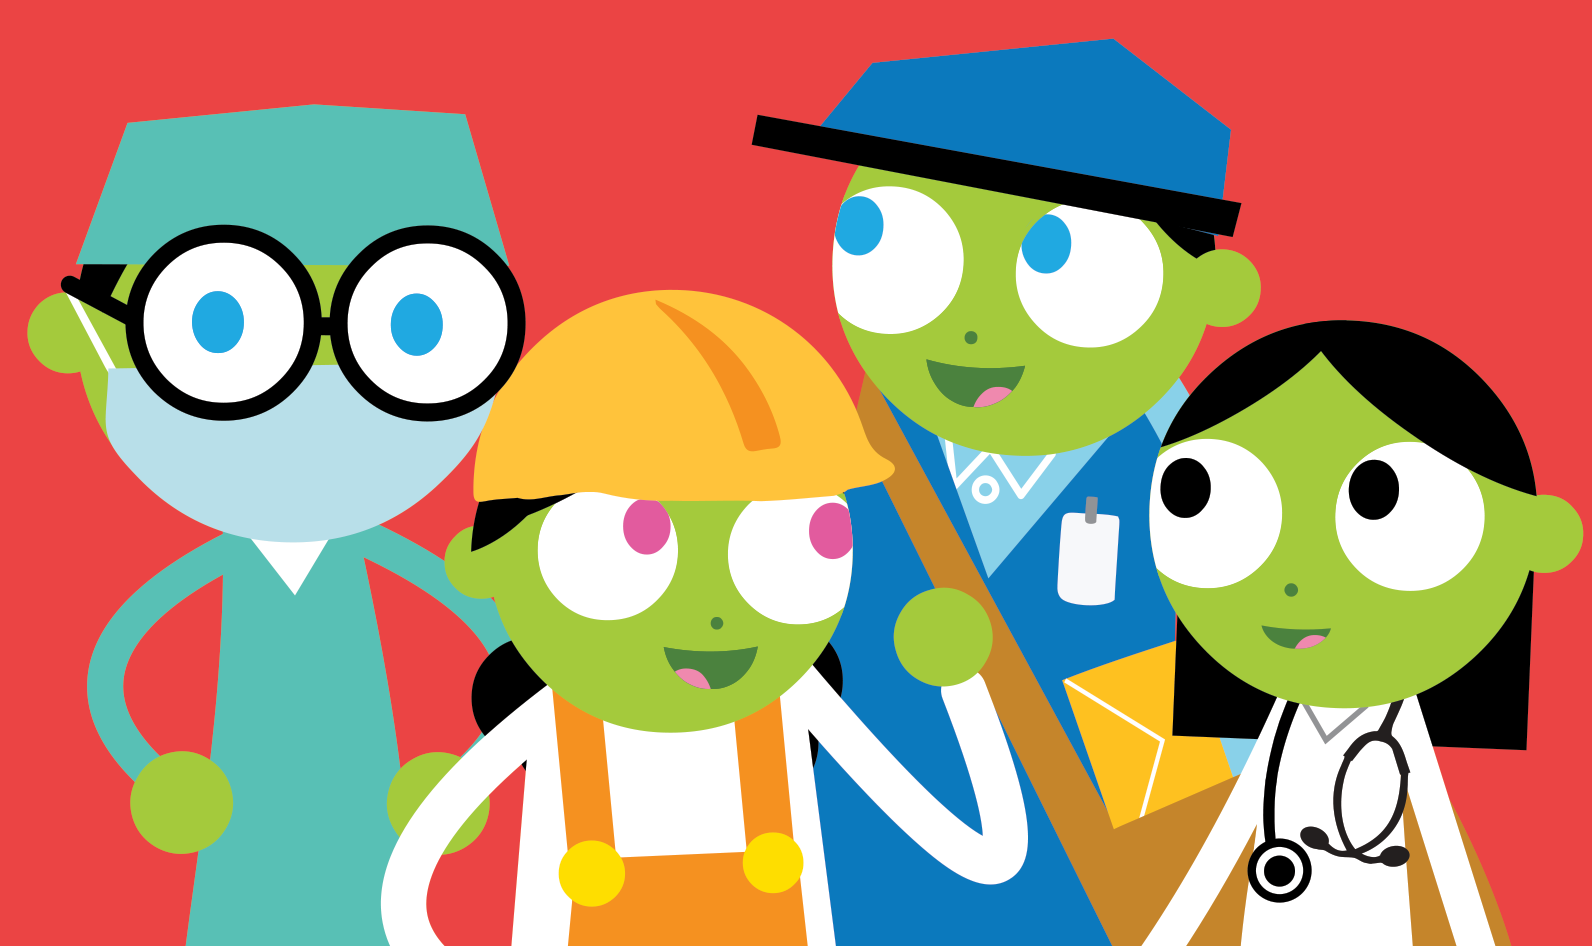 Pbs Kids Encourages Families To Thank Those Making A Difference In Our Communities Amid Covid 19